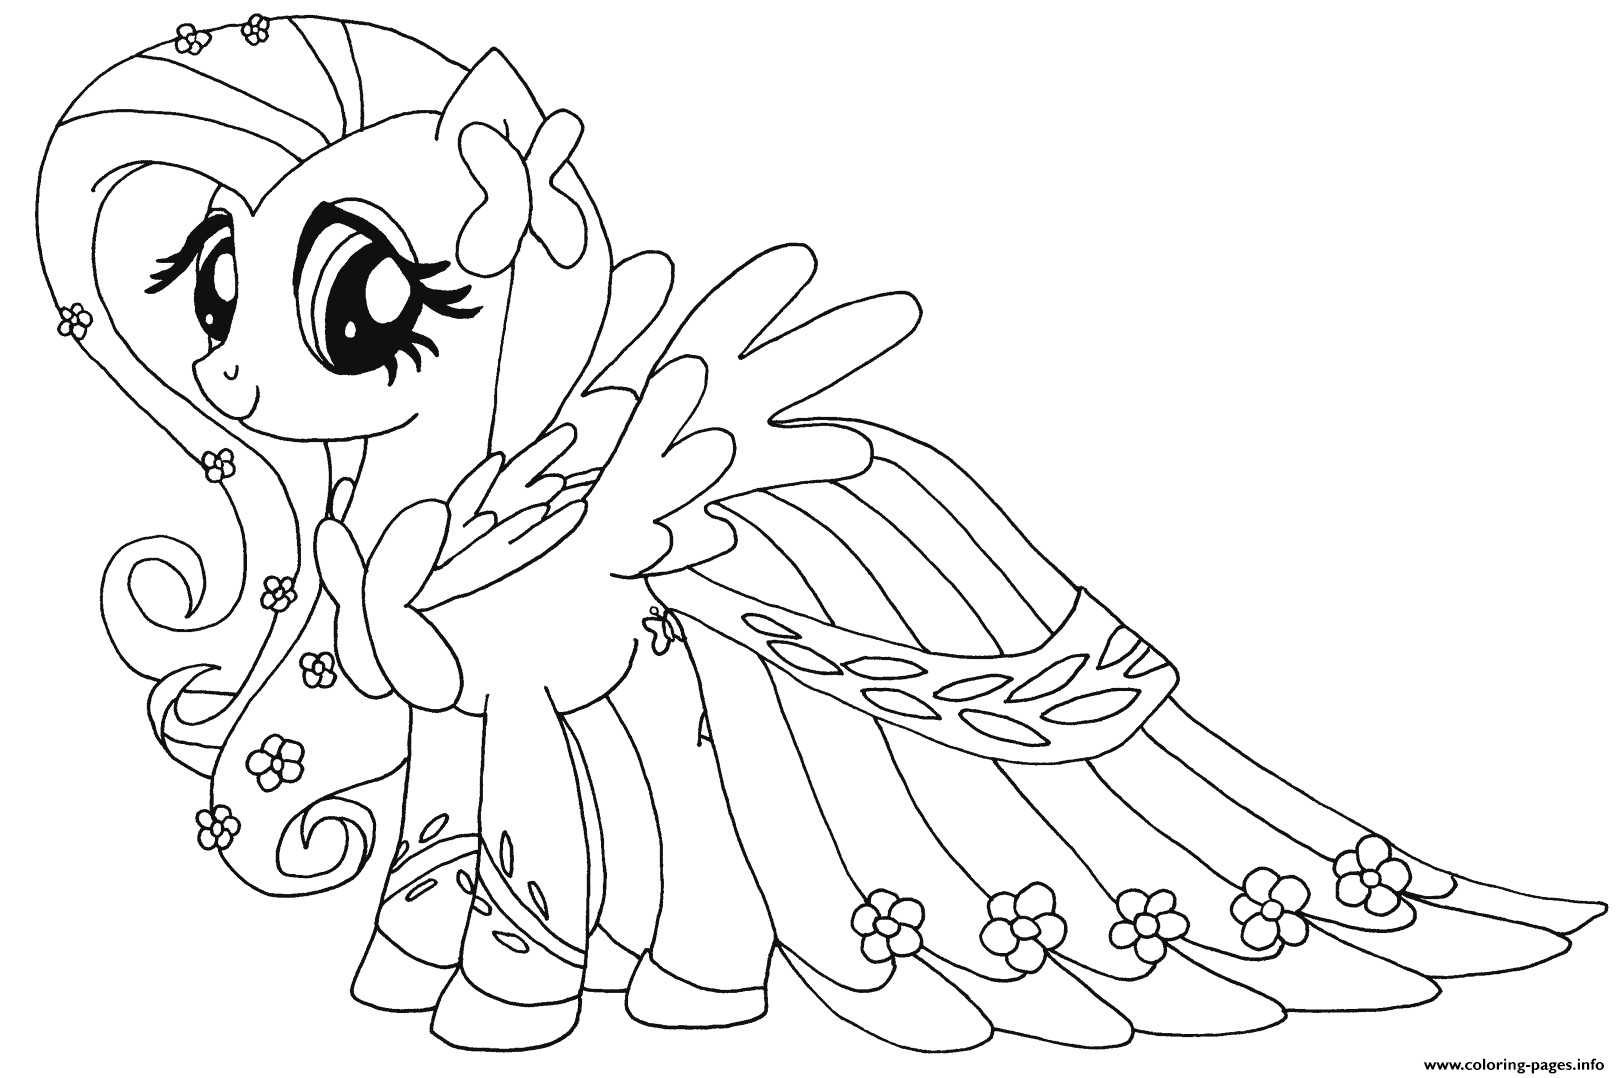 my little pony print and colour my little pony coloring pages print and colorcom little pony and print colour my